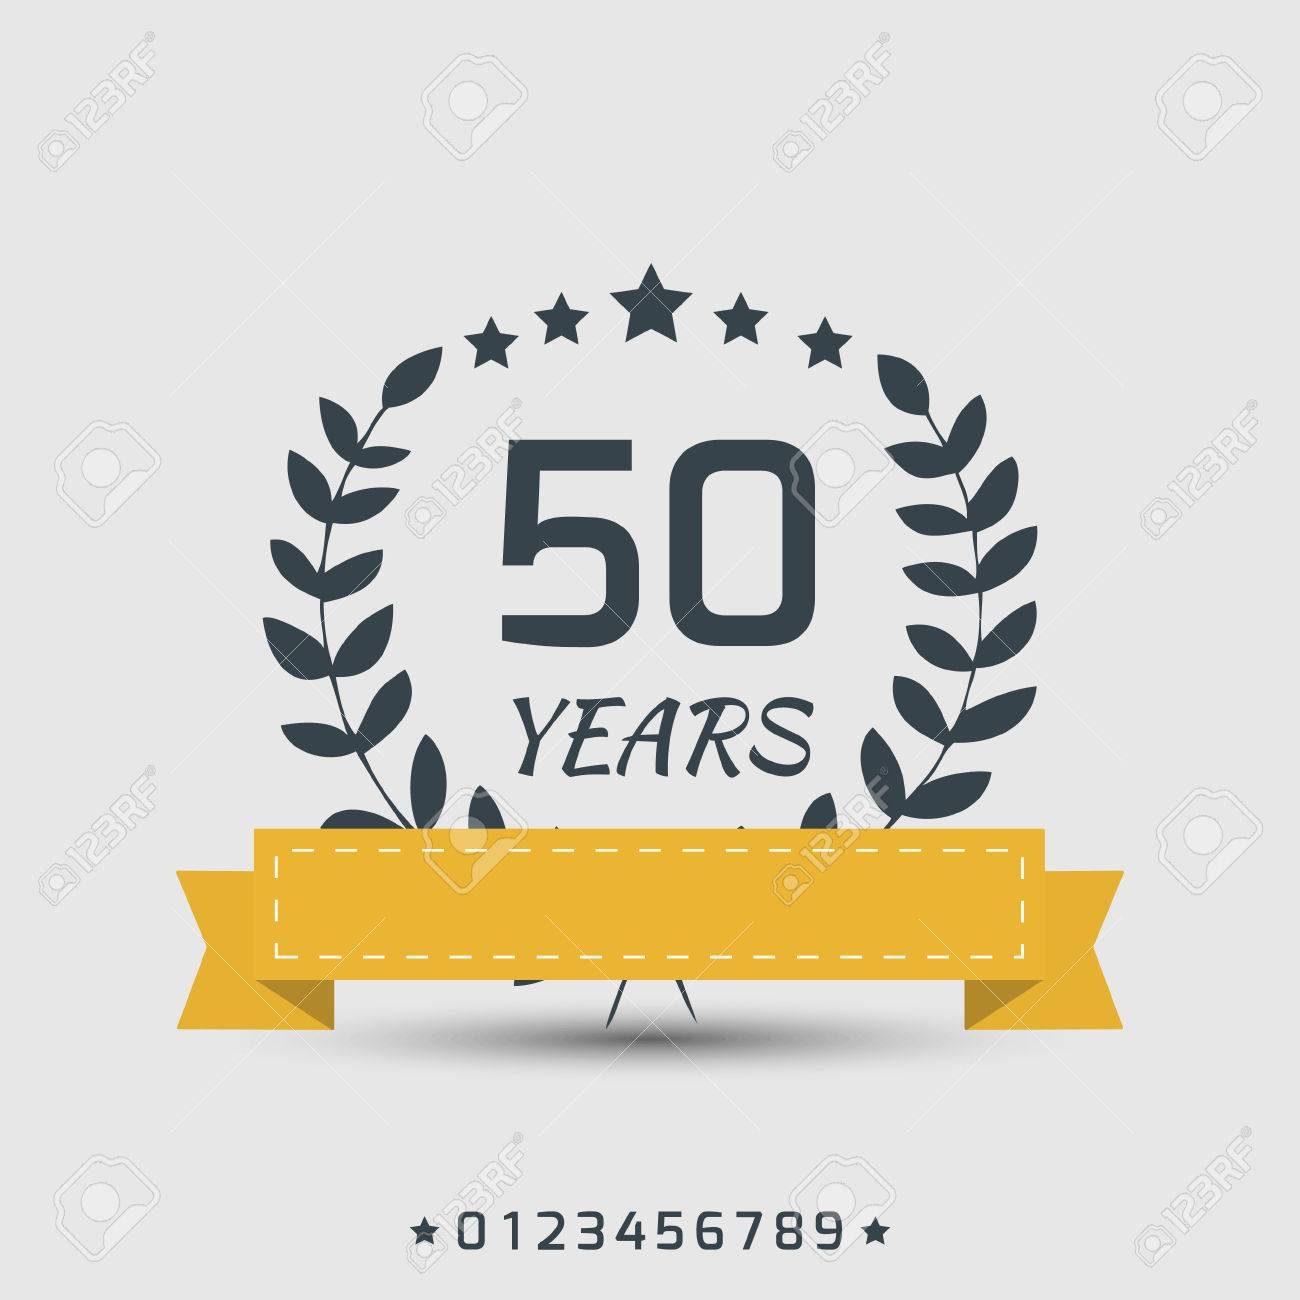 anniversary sign with yellow ribbon and satrs - 30014207